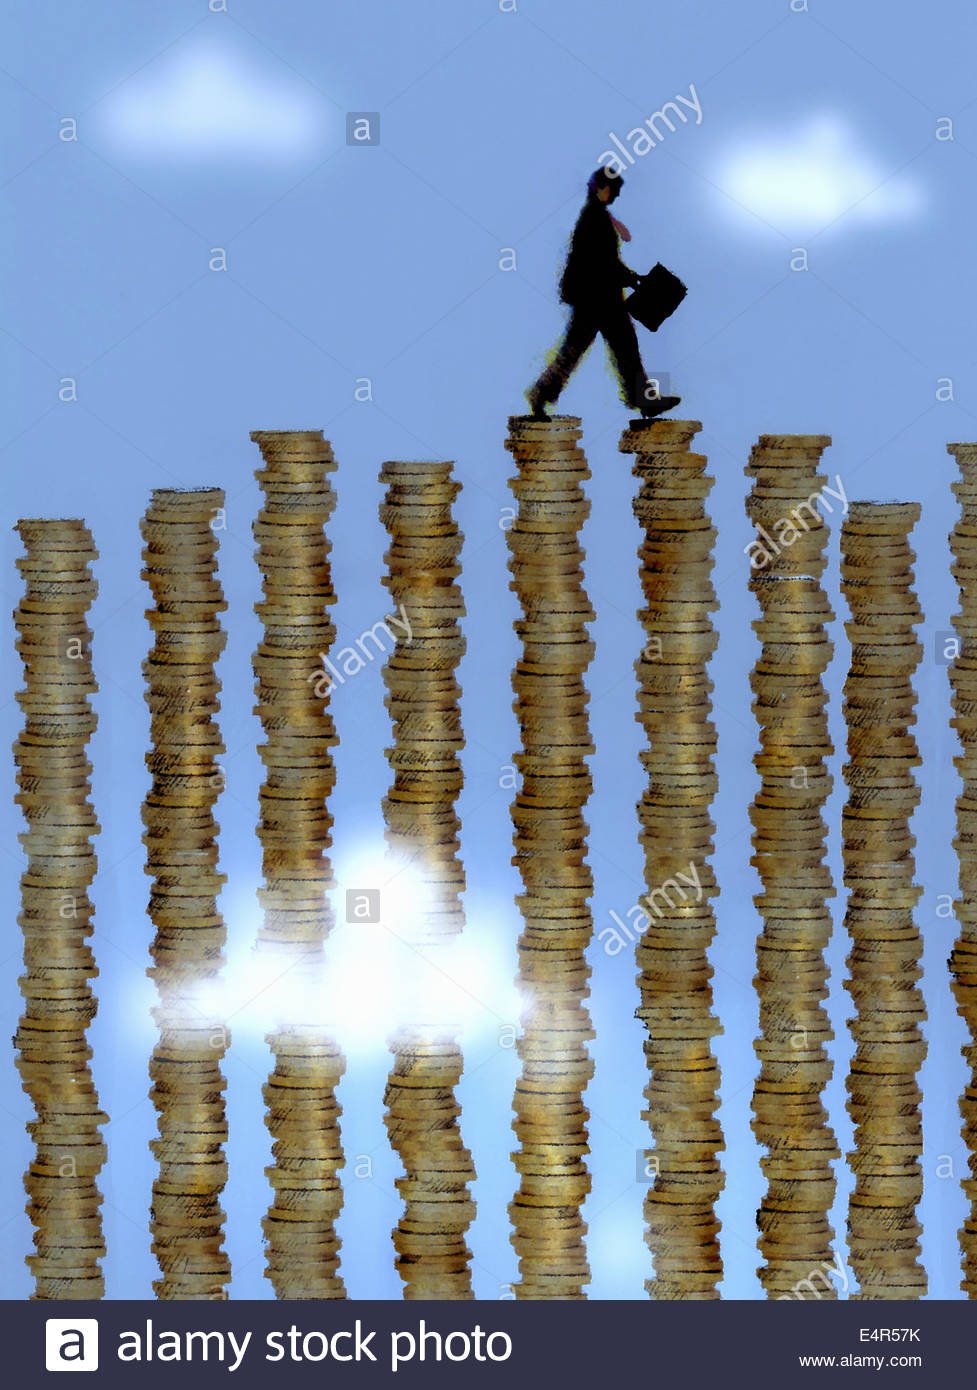 Businessman walking partout des piles de pièces d'argent formant bar chart Photo Stock